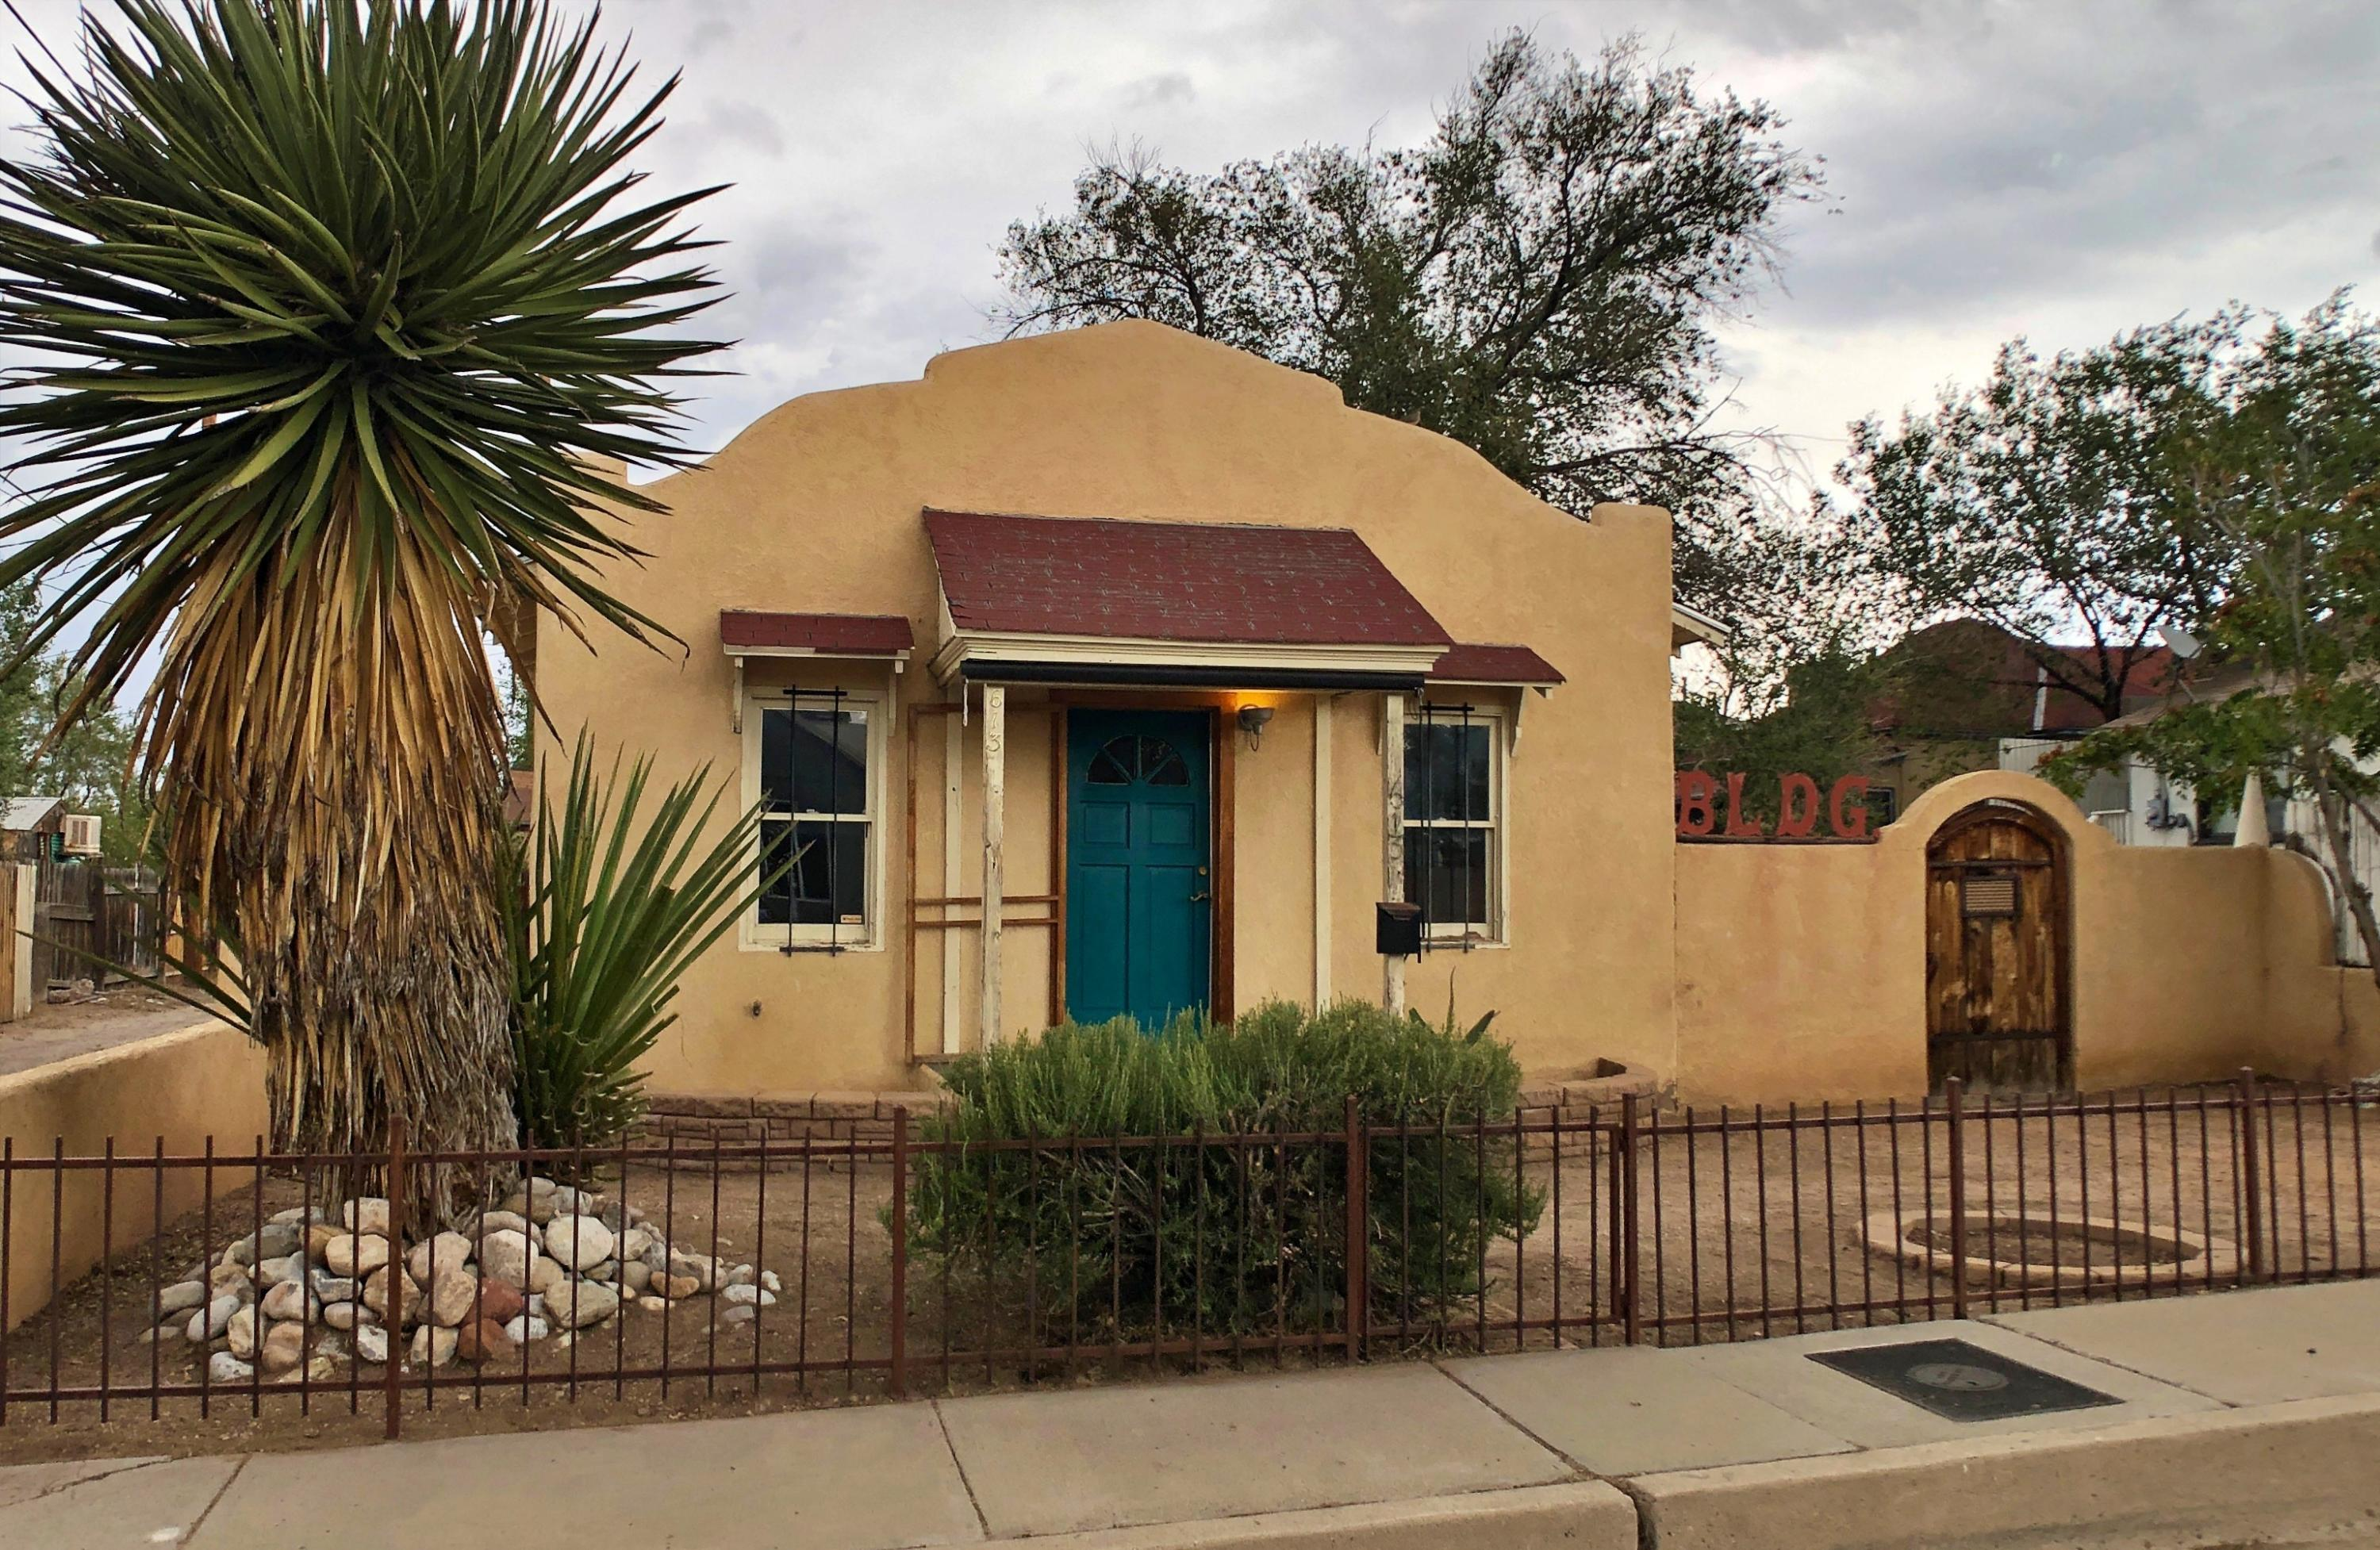 Sweet ''wavy parapet''-style Casita in historic Huning Highlands neighborhood. Built in the 1920s, the spacious loft-like one-bedroom home is over 900sqft, with high-volume arched ceilings, an open floorplan allowing for flexible living space, & a bright playroom/office area with chalkboard-painted wall for all sorts of fun. More to love: wood-topped two-seater kitchen breakfast bar counter & wood ceiling, hardwood floors & some slate in the bathroom, great built-in living room shelving, the bedroom walk-in closet provides plenty of other storage, recessed lighting provides subtle light throughout, & the home has a fresh sleek coat of paint. Outside there's a great south-facing front porch with rolling sunshade & the private high-walled side courtyard is an easy-to-maintain chillspace.